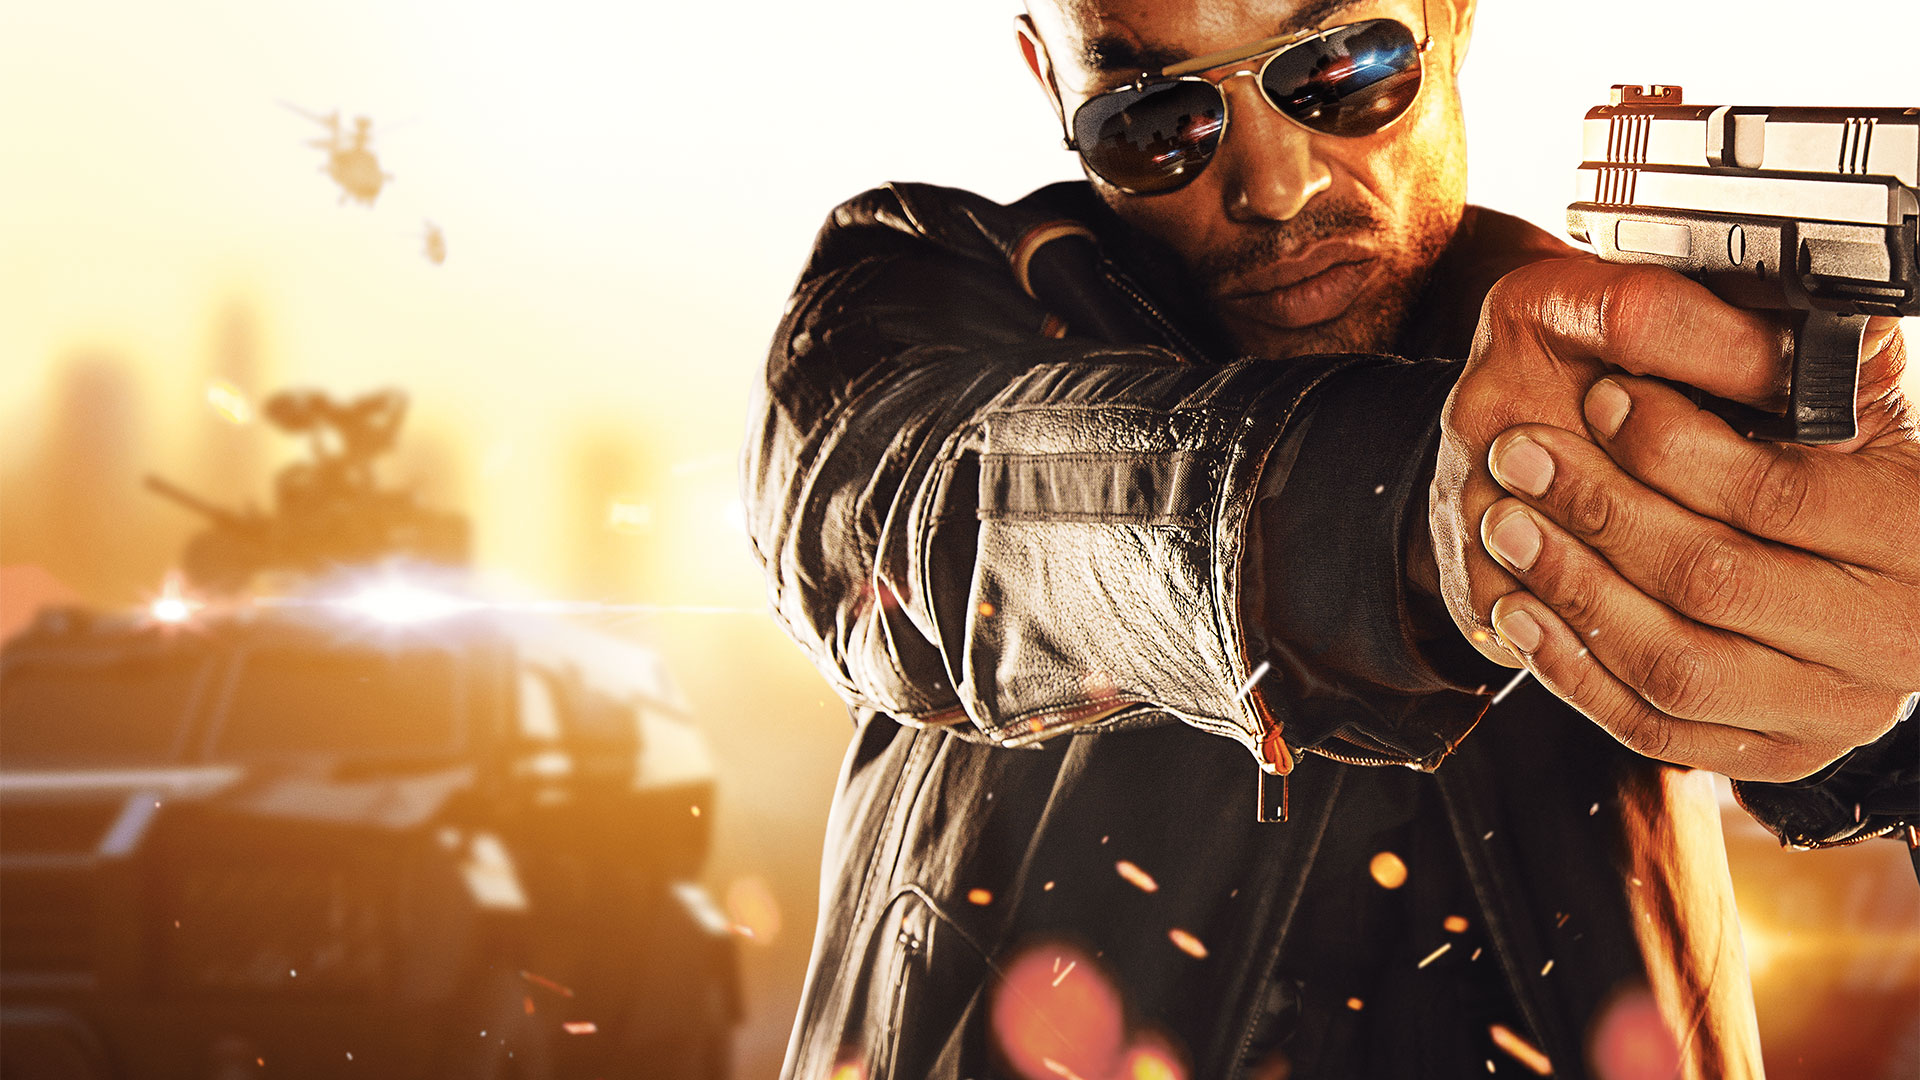 James Daly (actor) HD Wallpapers Battlefield Hardline Iphone Wallpaper Battlefield Hardline HD